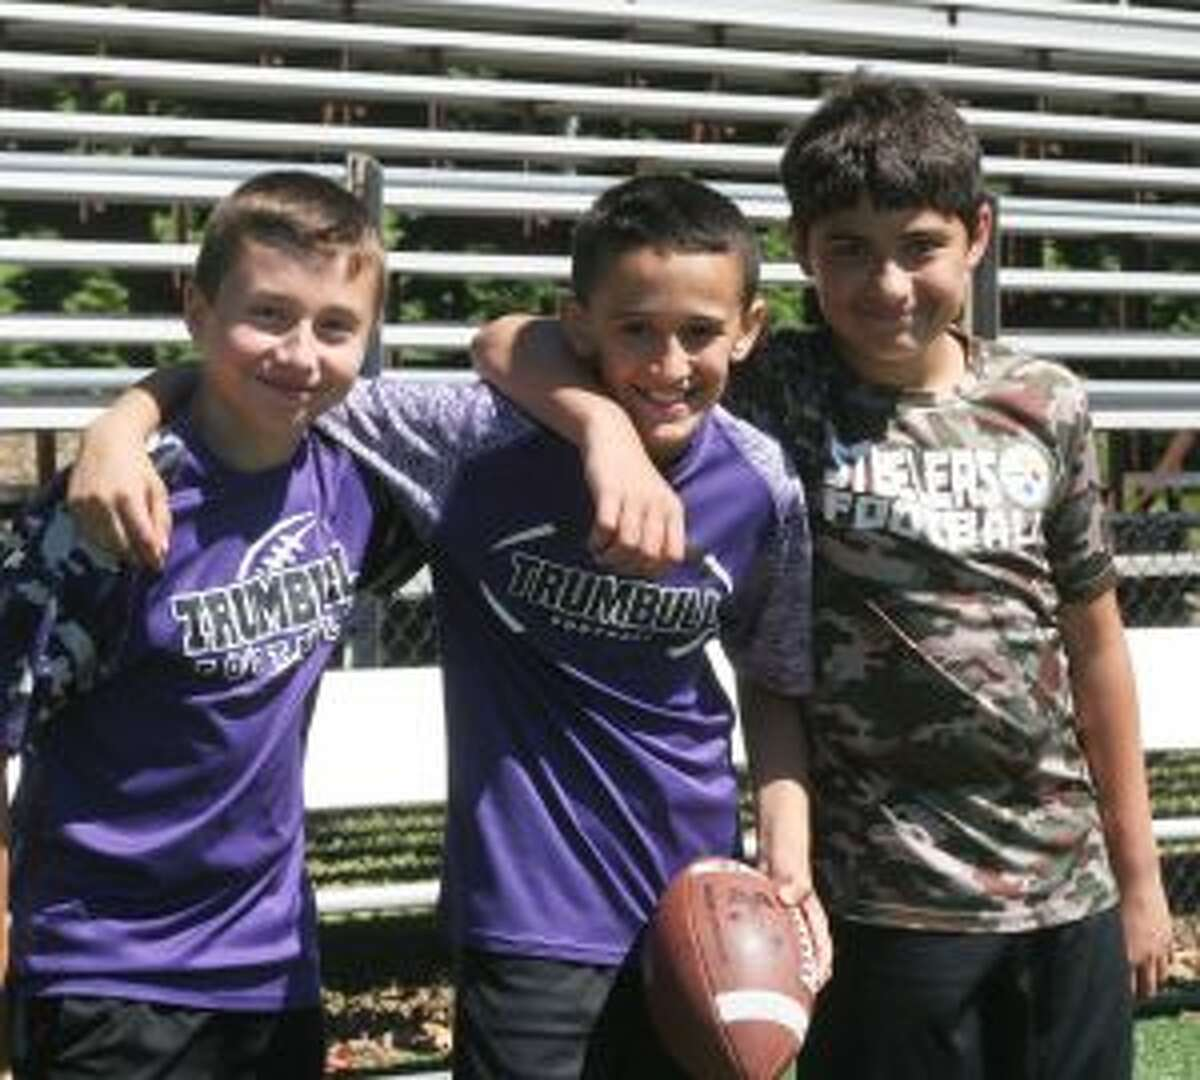 Trumbull Rangers players Wesley Dayton, Joey DiMarco and Vincent Desautels take a break near a water station. - Bill Bloxsom photo